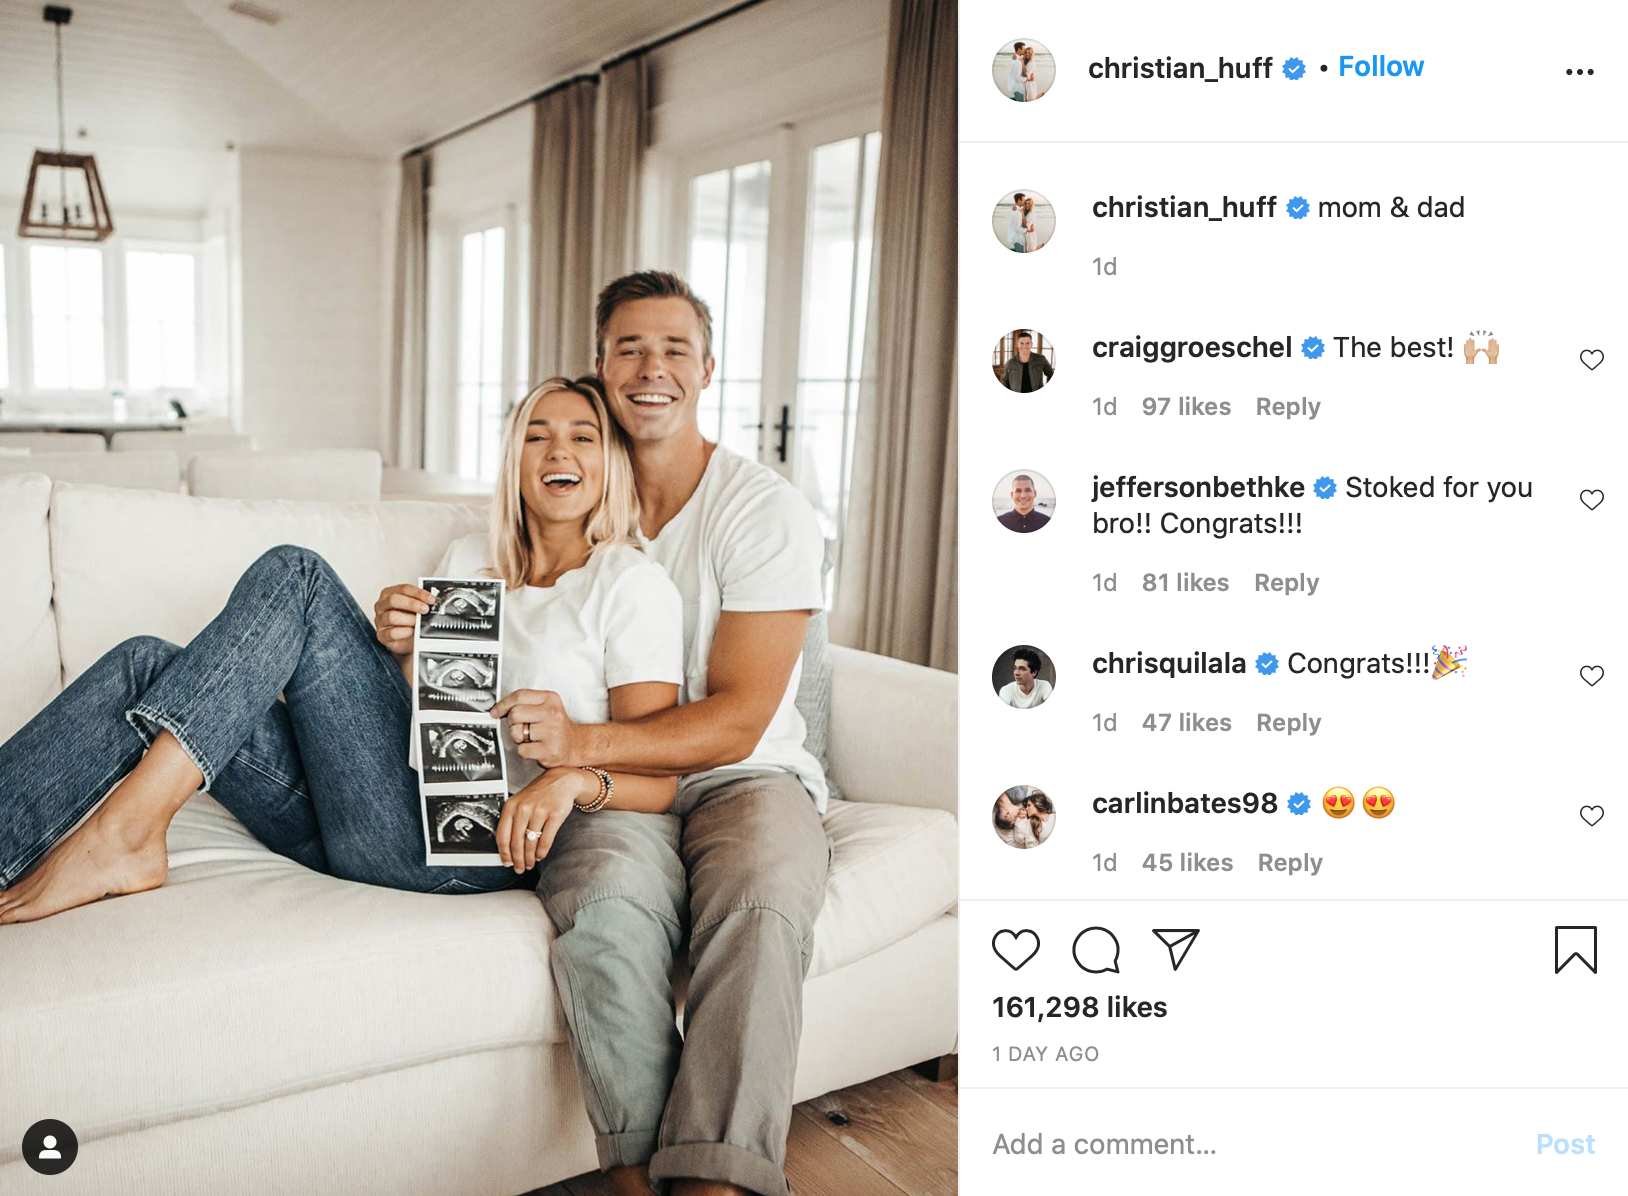 Christian Huff, Sadie and Christian Huff announce pregnancy